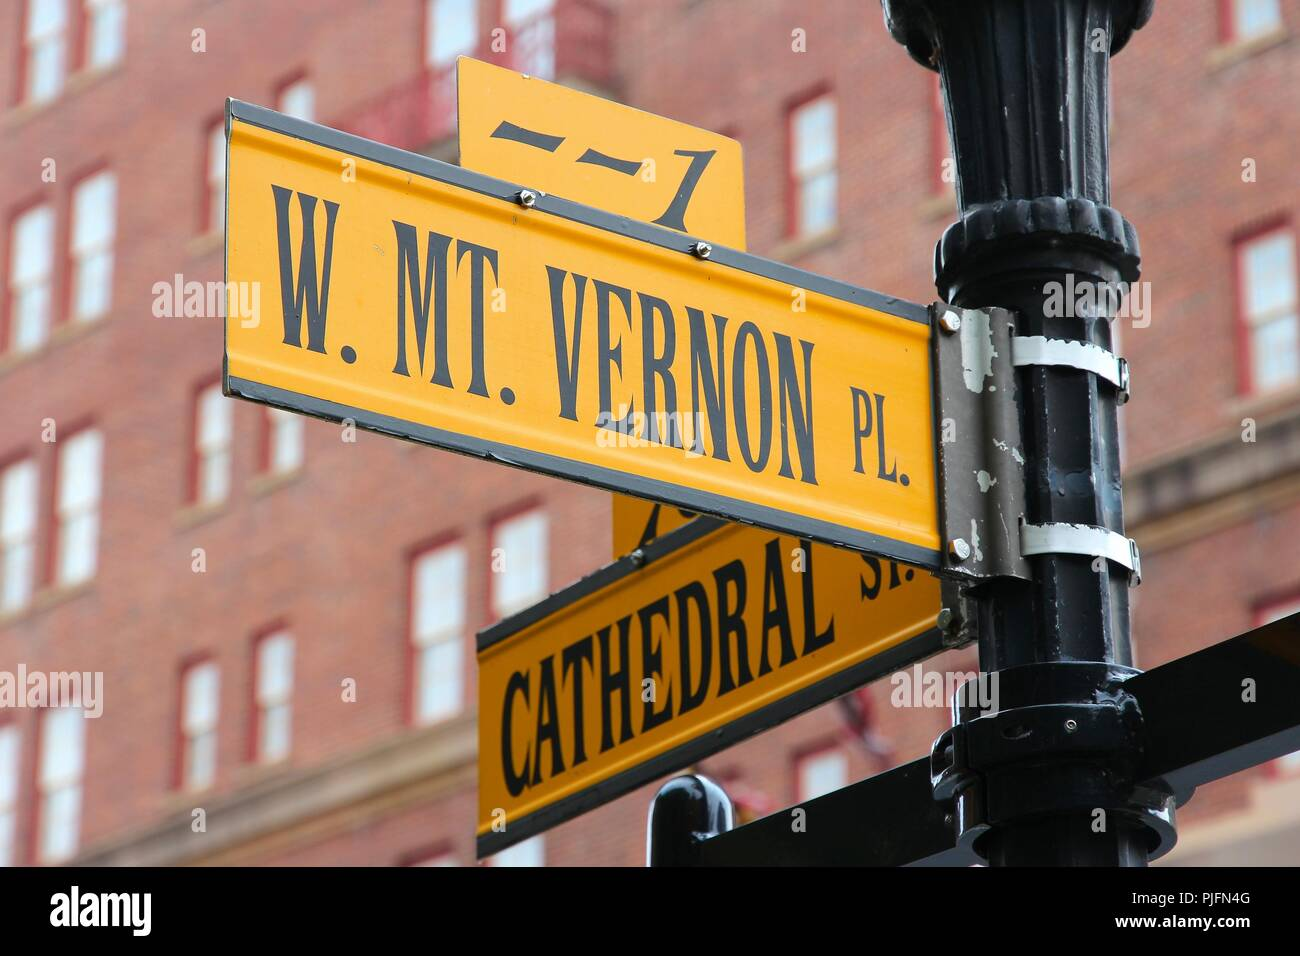 Baltimore, Maryland in the United States. Famous landmark - Mount Vernon Place. Stock Photo